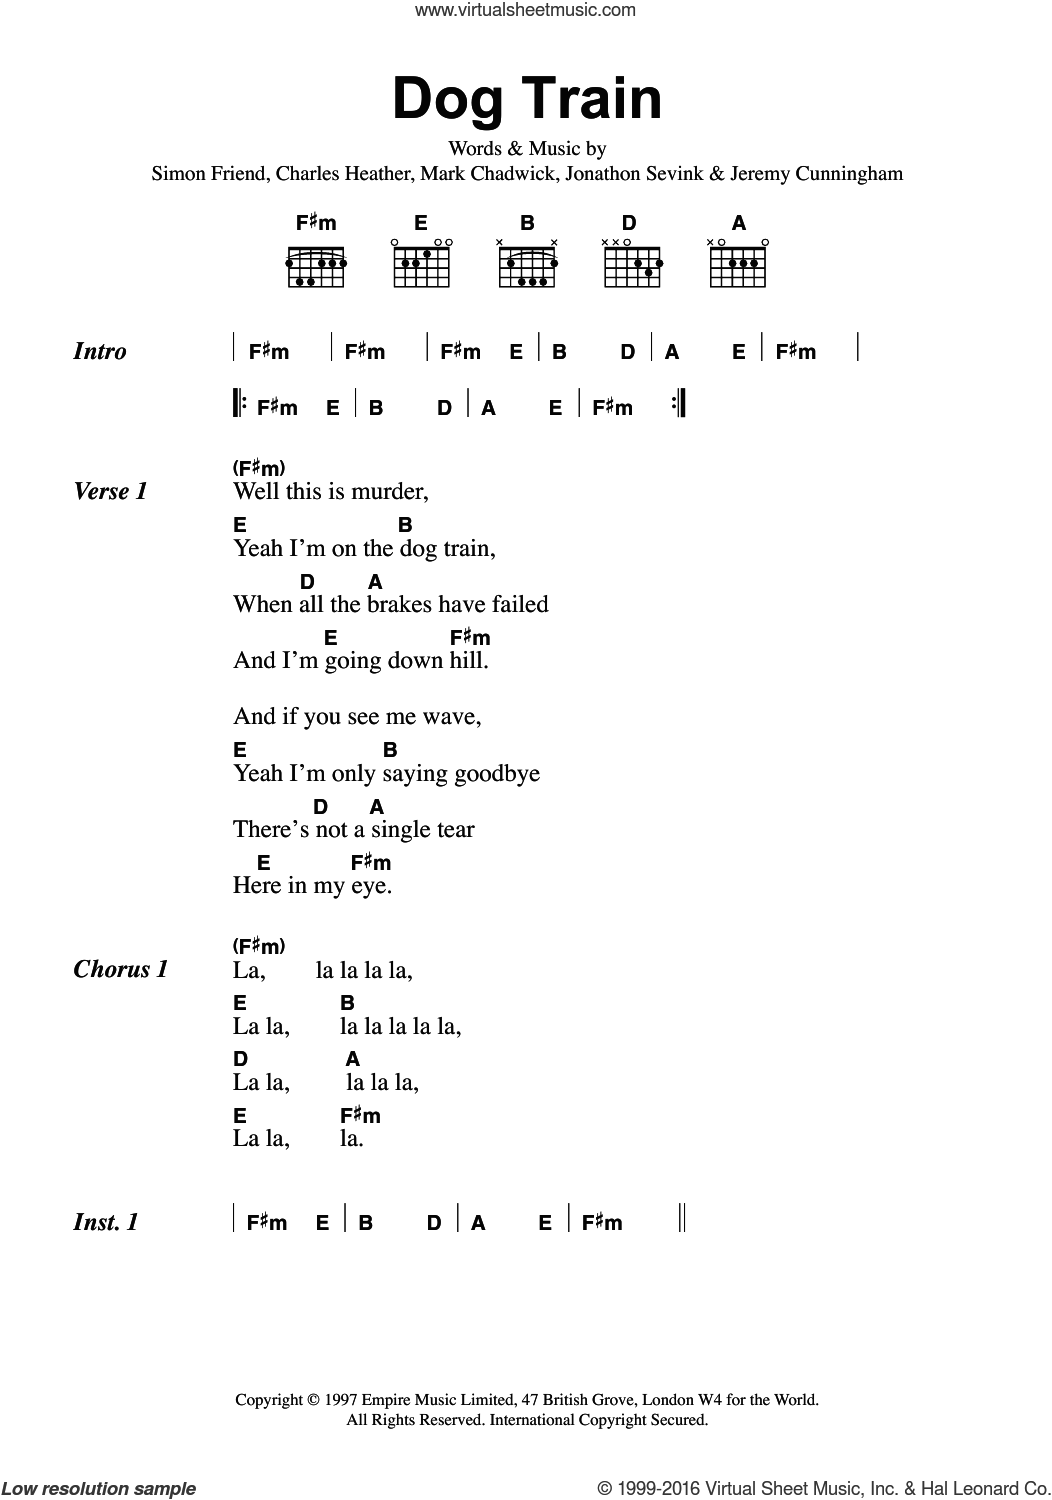 Dog Train sheet music for guitar (chords) by The Levellers, Charles Heather, Jeremy Cunningham, Jonathan Sevink, Mark Chadwick and Simon Friend, intermediate